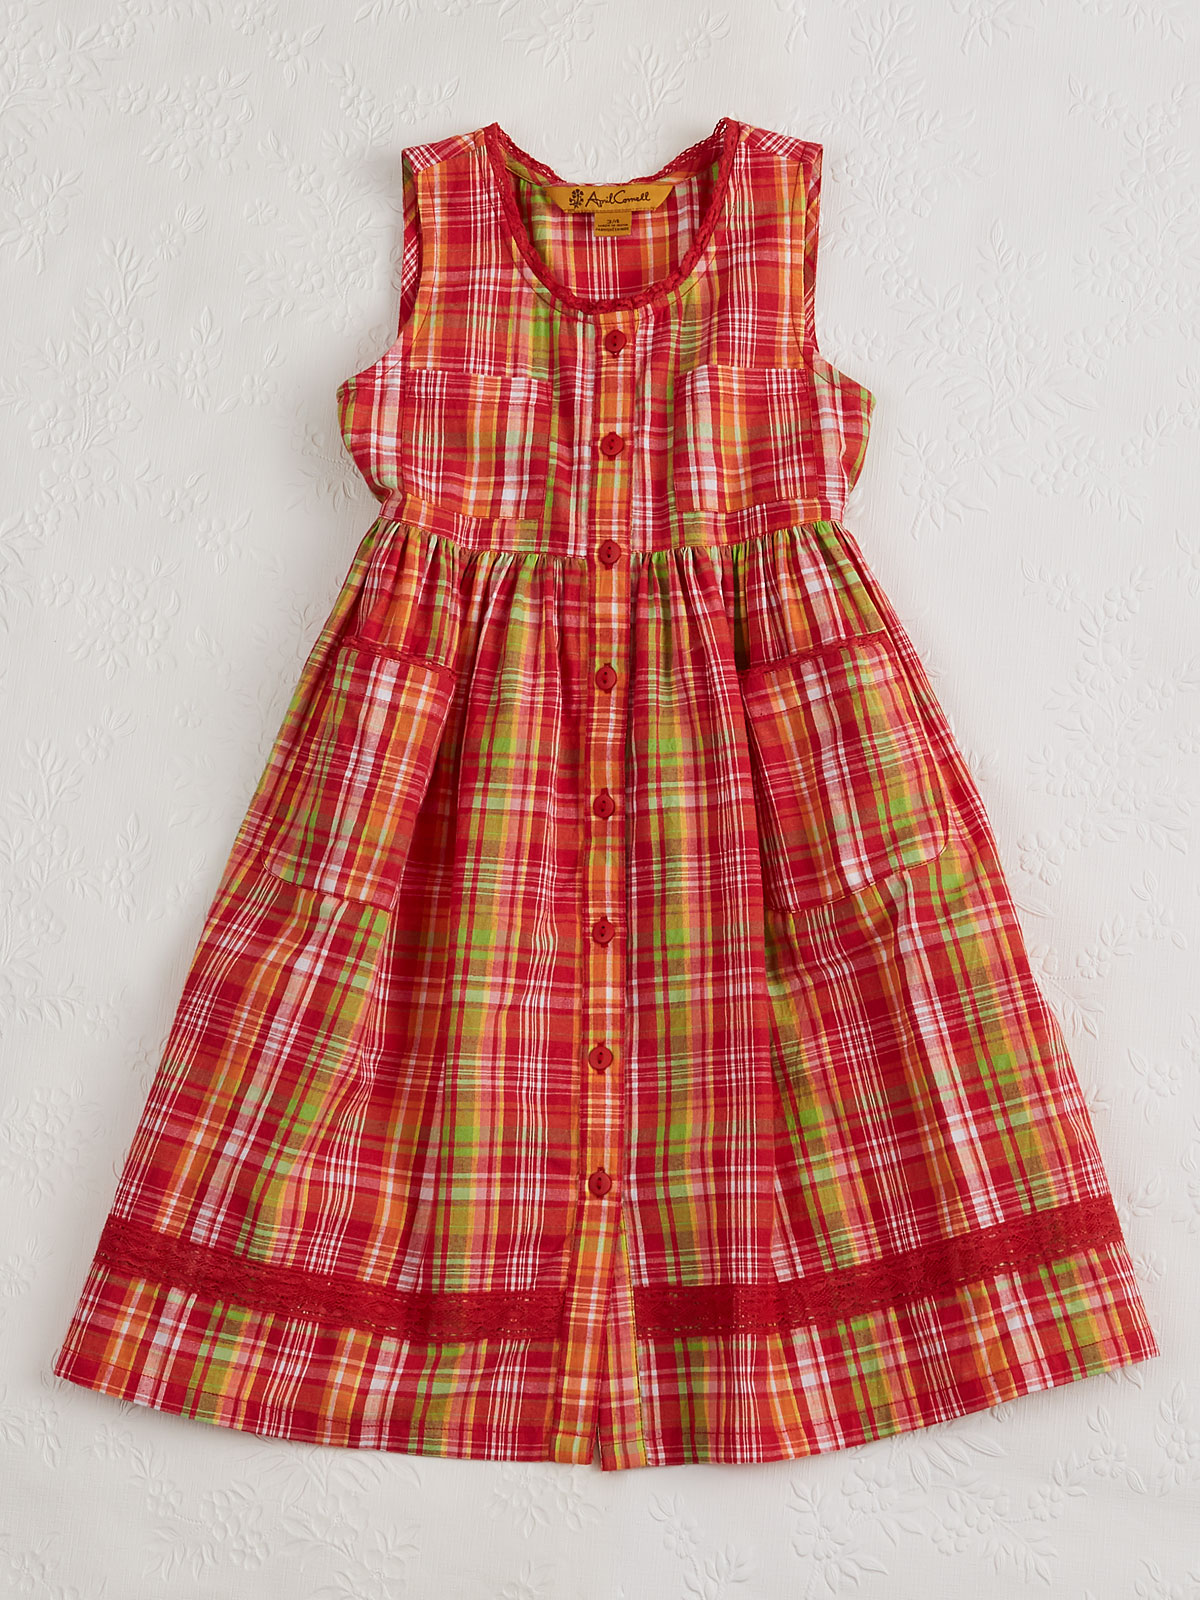 Watermelon Plaid Girls Dress